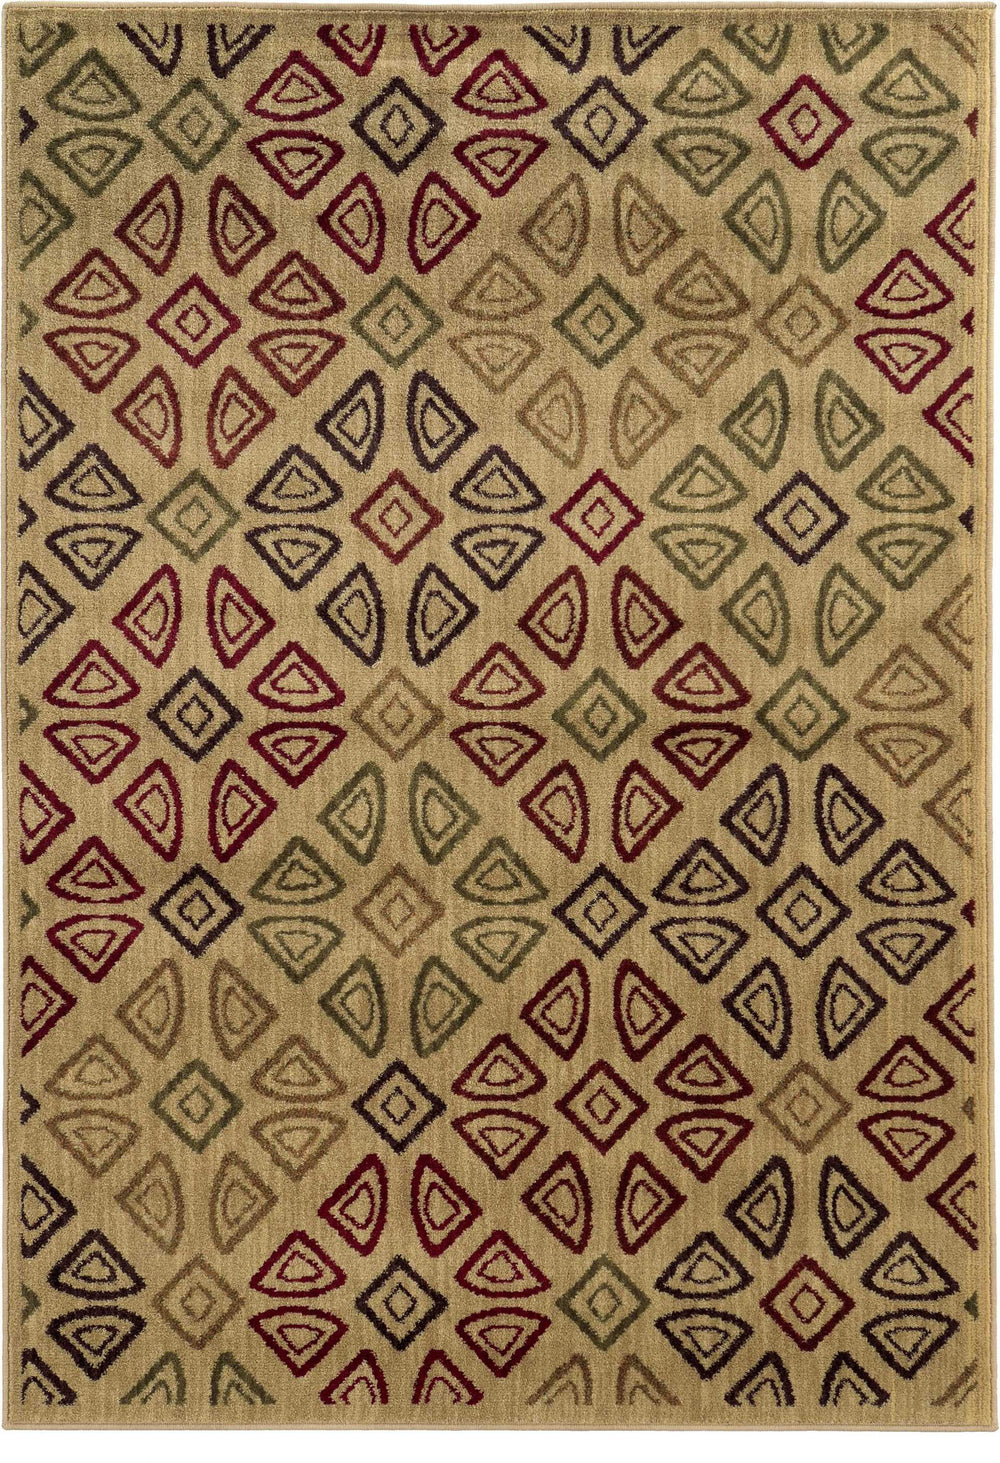 Oriental Weavers Aston 537 Area Rug